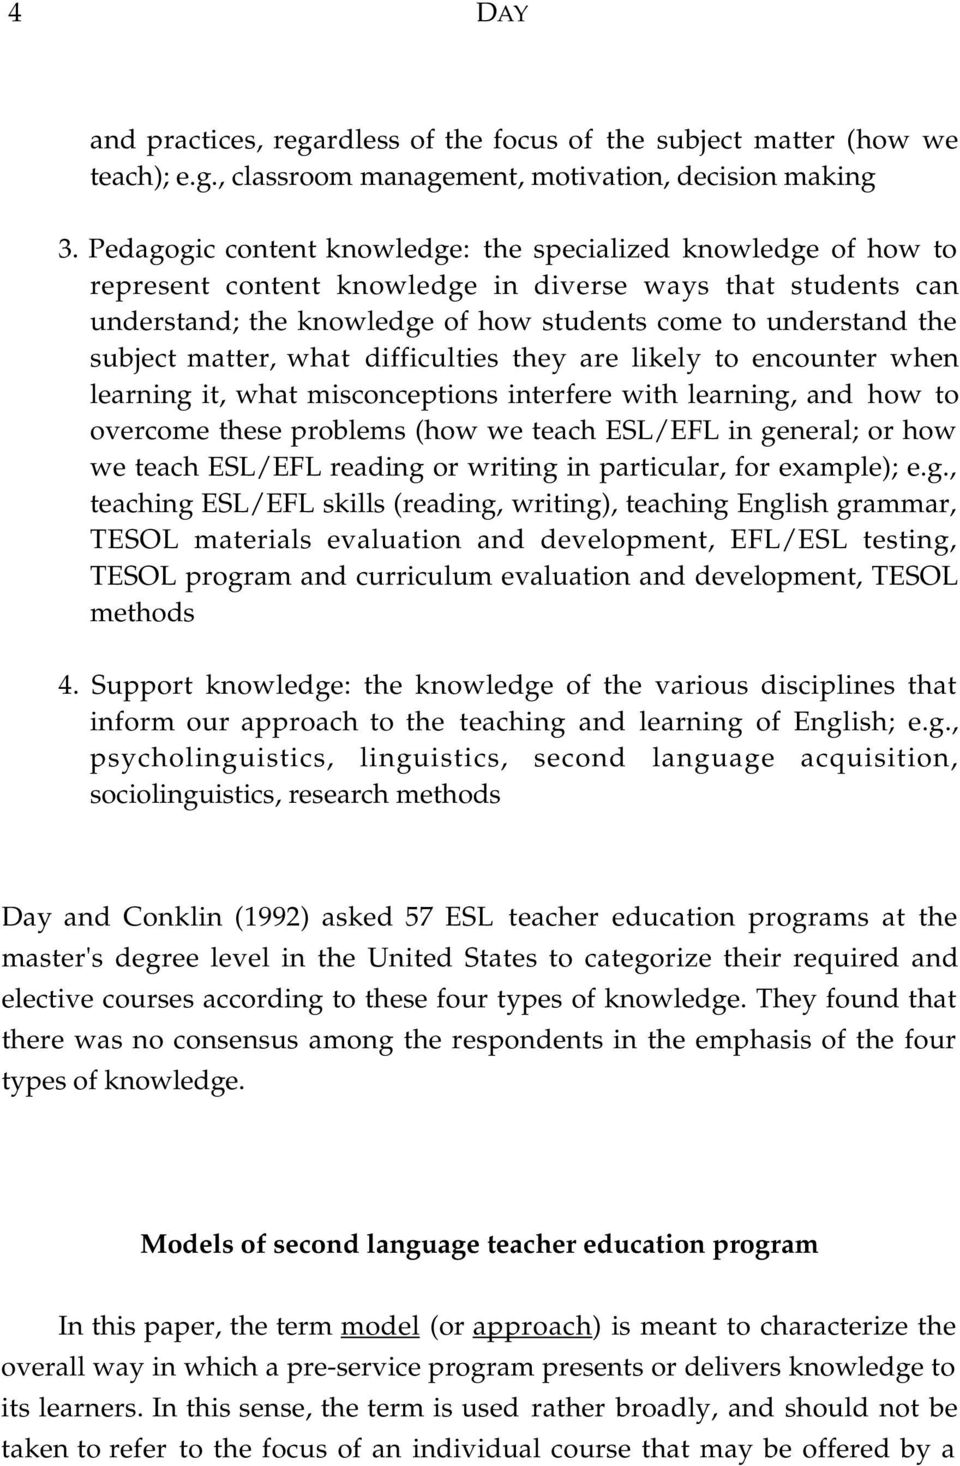 matter, what difficulties they are likely to encounter when learning it, what misconceptions interfere with learning, and how to overcome these problems (how we teach ESL/EFL in general; or how we